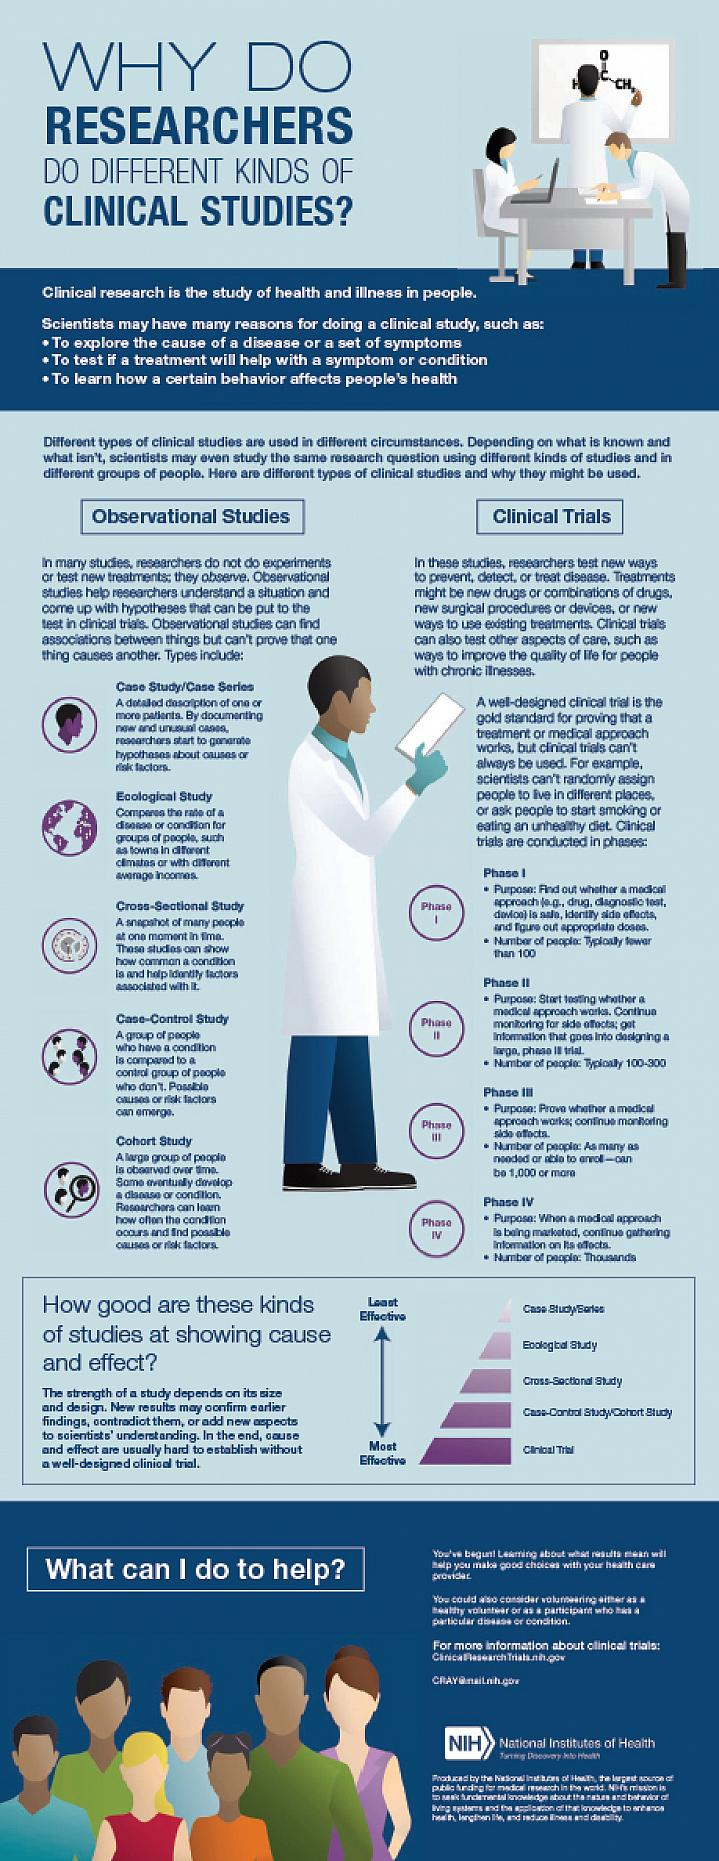 Why Do Researchers Do Different Kinds of Clinical Studies?